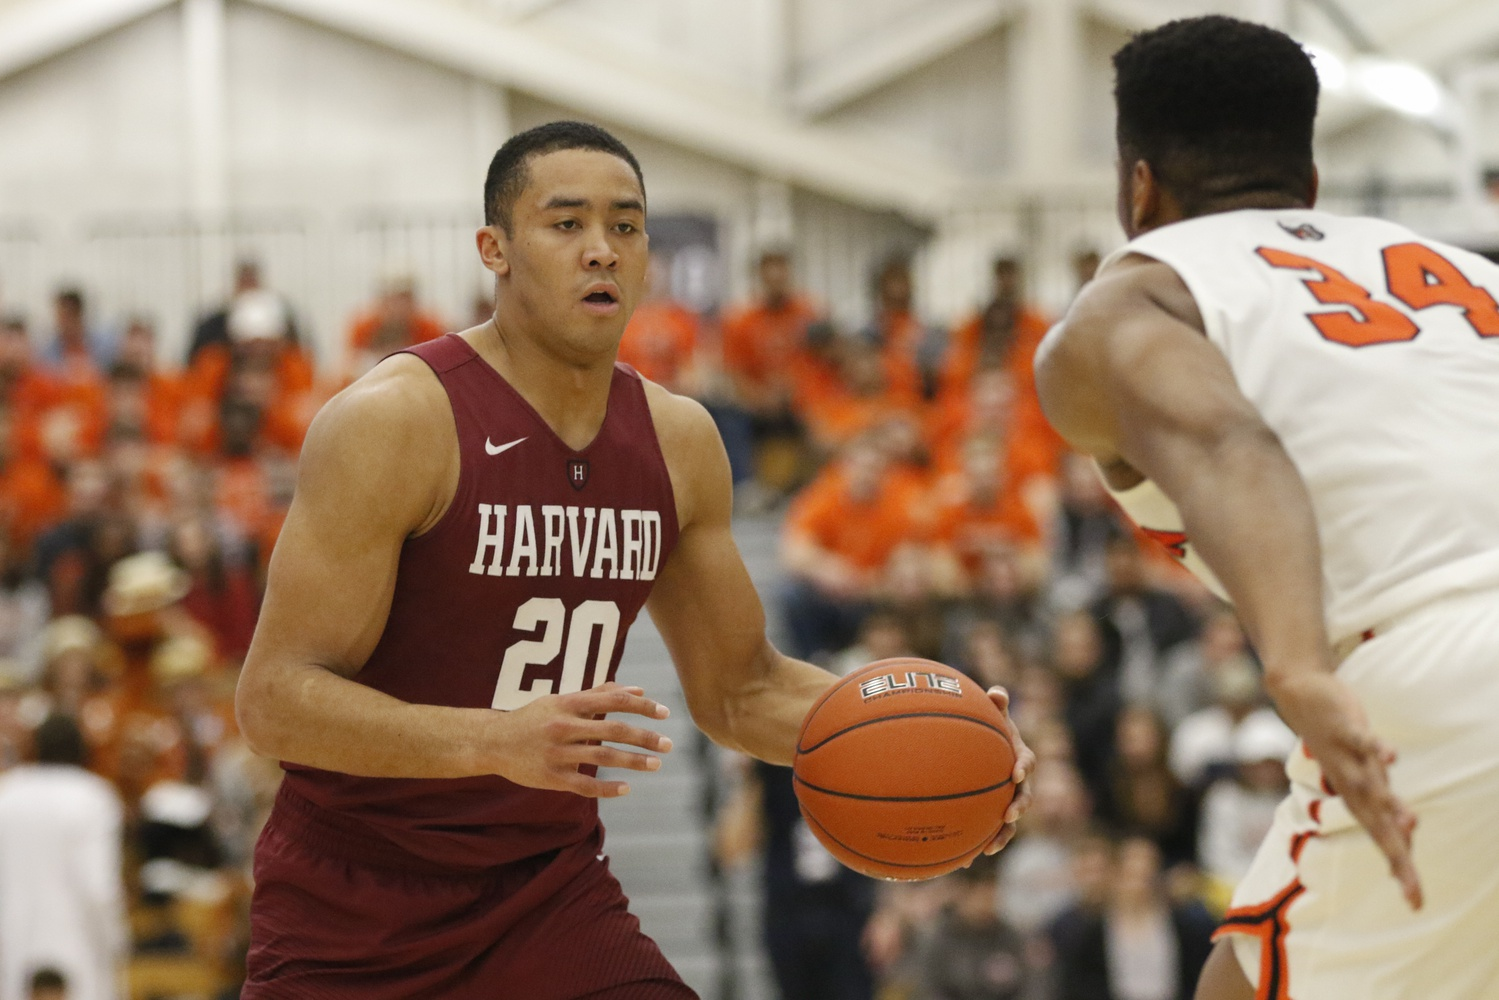 Senior forward Justin Bassey sizes up Princeton center Richmond Aririguzoh. Bassey contributed six points, eight rebounds, and four assists in Harvard's loss.